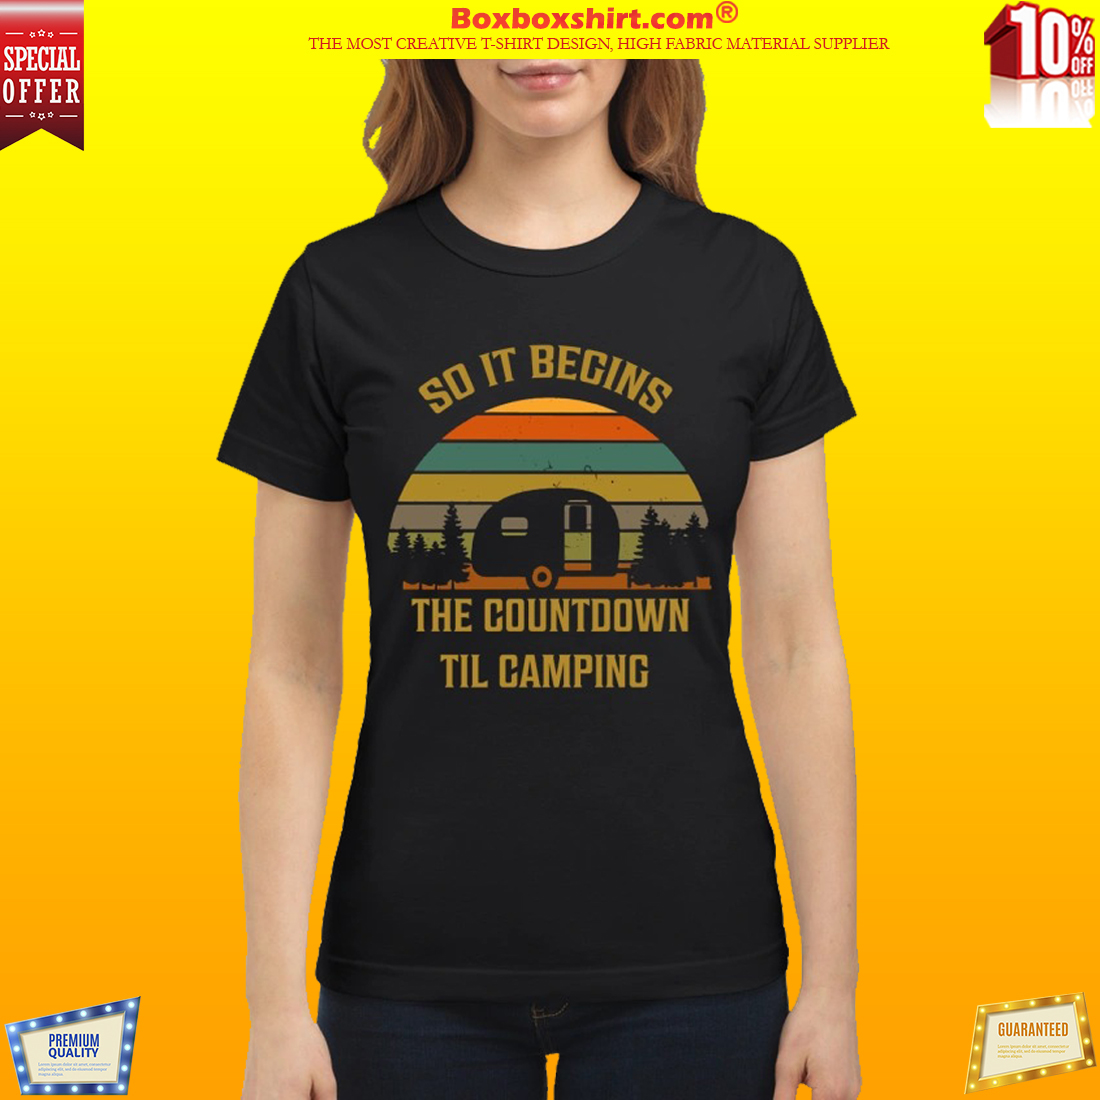 So it begins the countdown til camping classic shirt